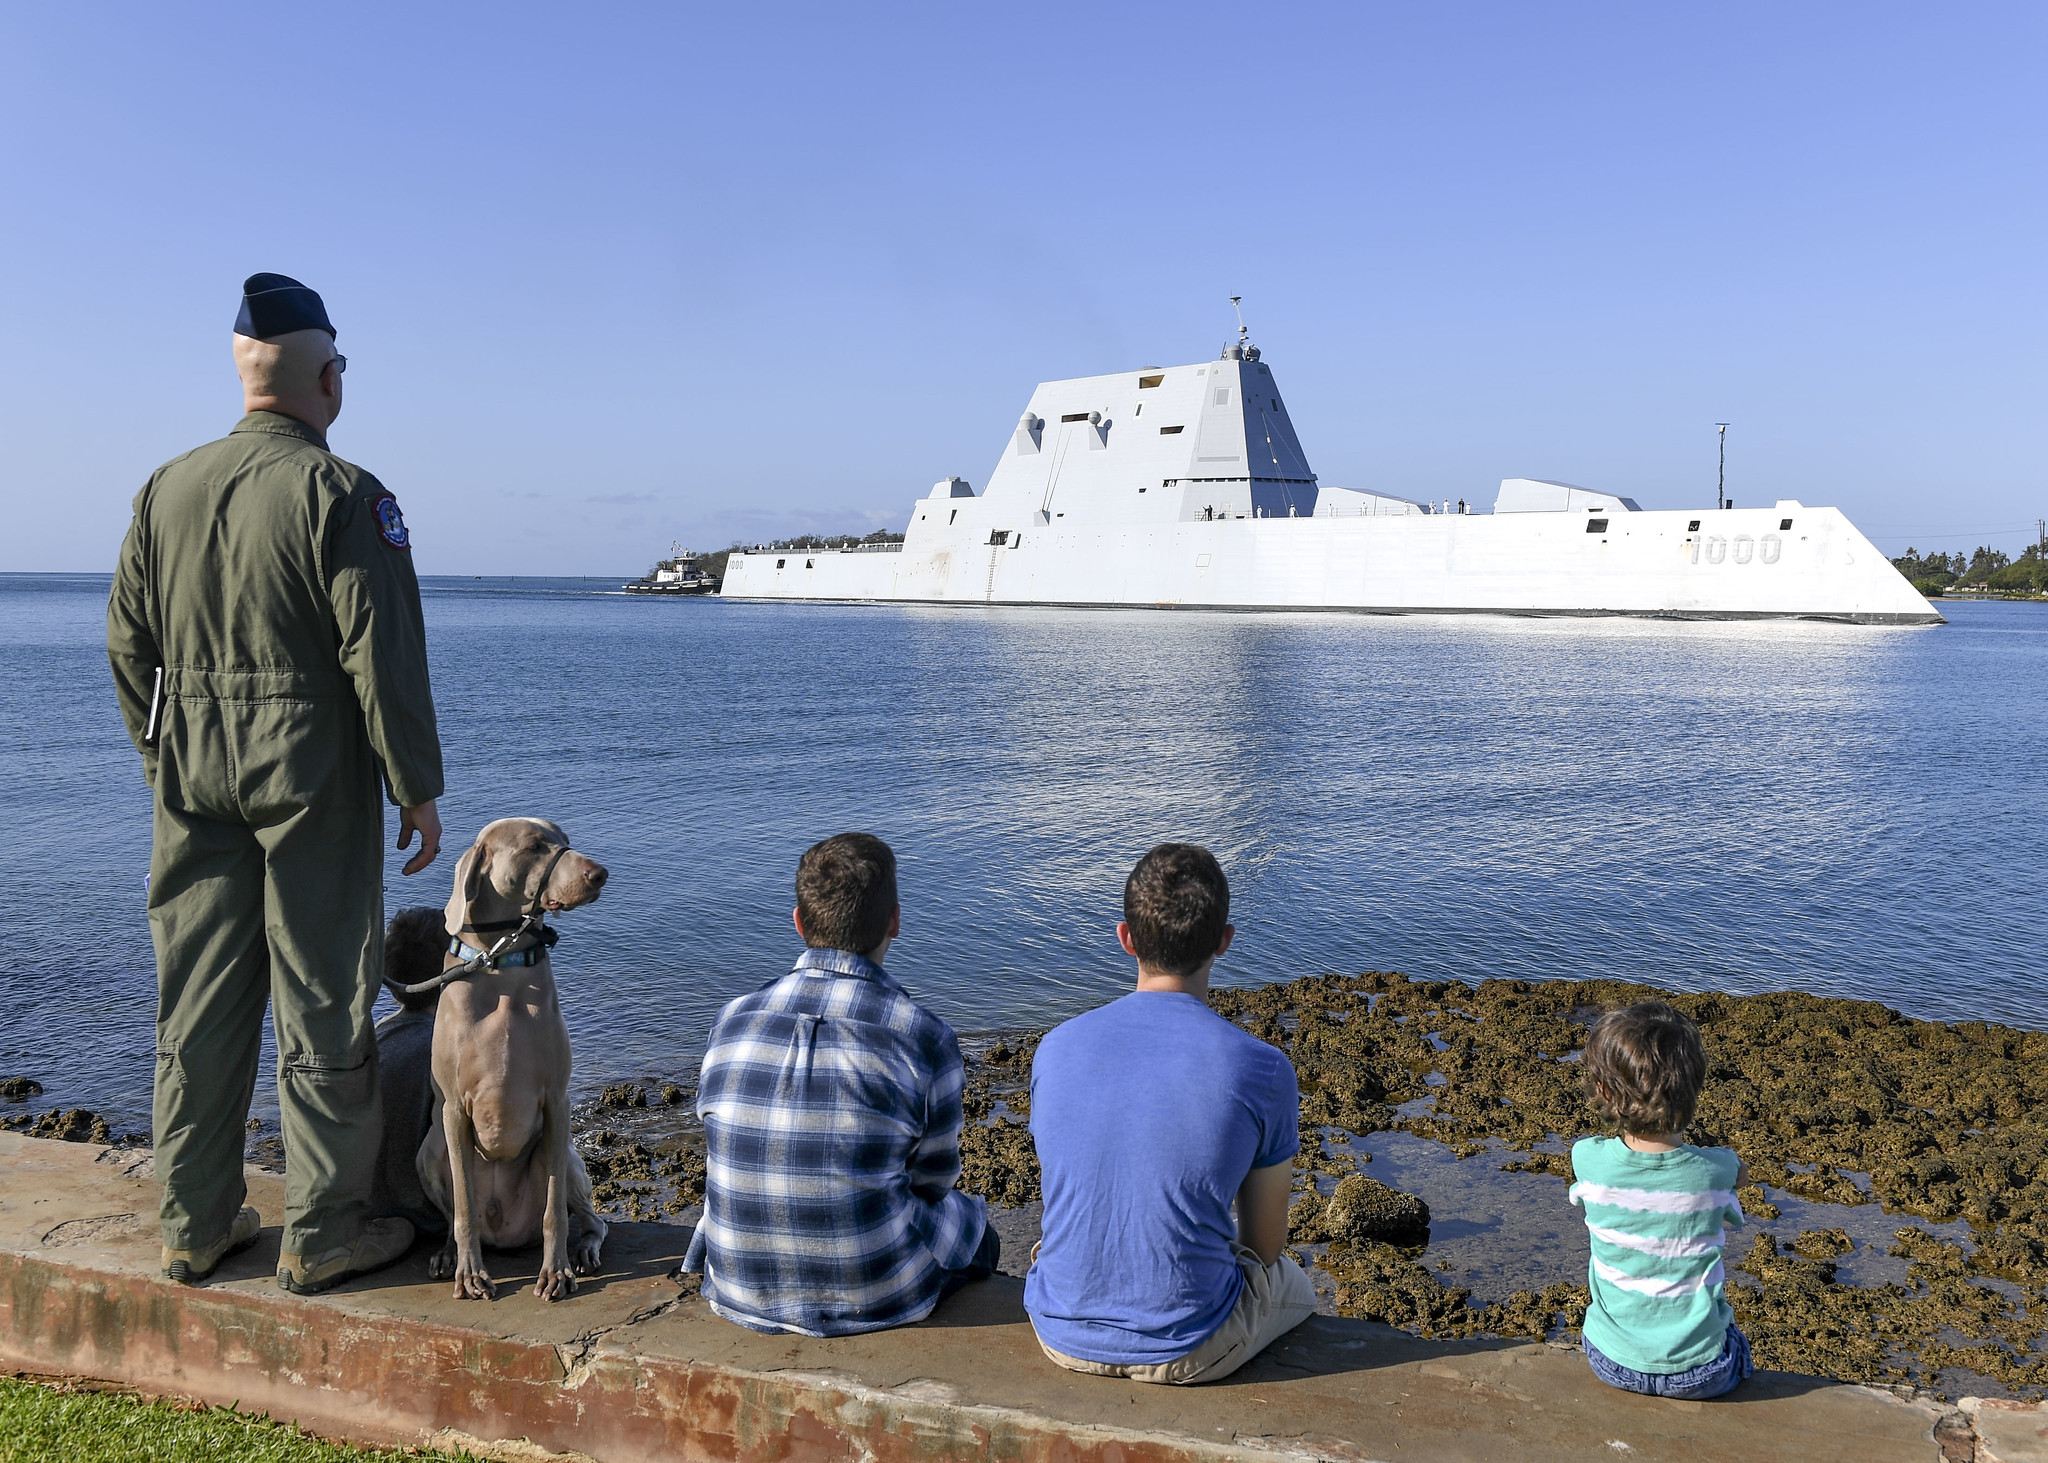 Sailors man the rails aboard the guided-missile destroyer USS Zumwalt (DDG 1000) as the ship pulls into Joint Base Pearl Harbor-Hickam on April 2, 2019. (Mass Communication Specialist 1st Class Holly L. Herline/Navy)